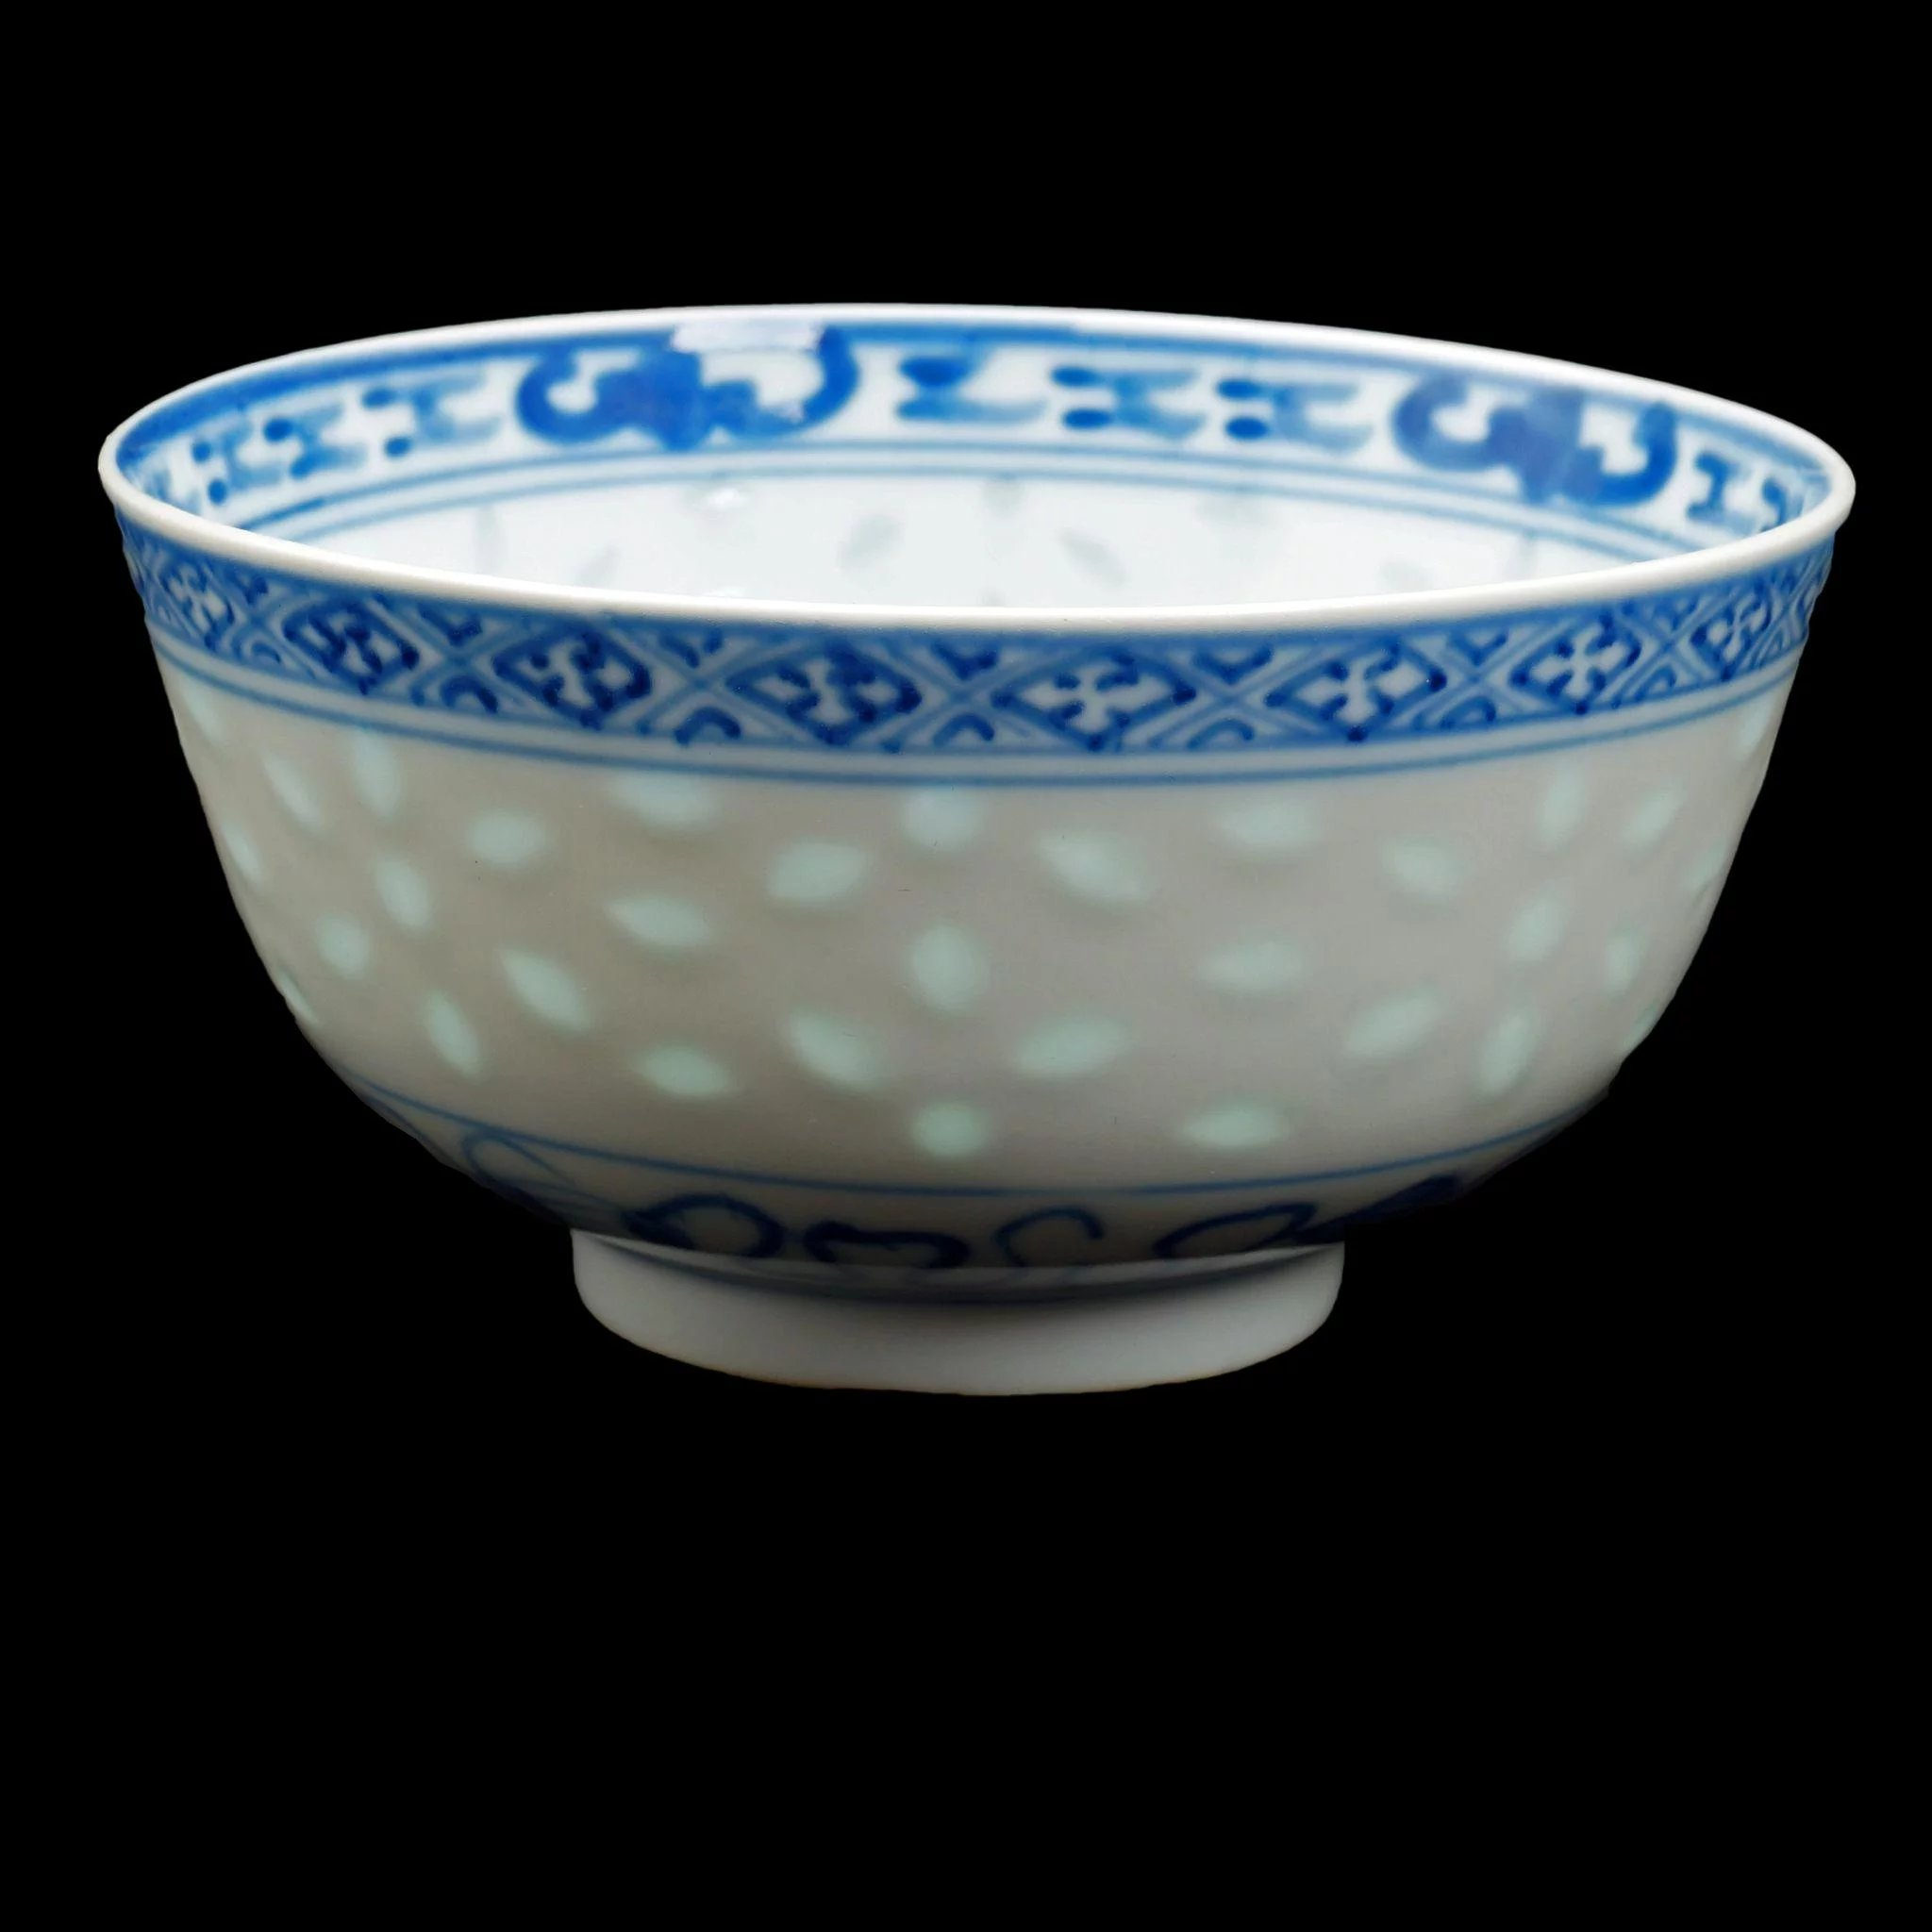 Pair Of Chinese Porcelain Blue And White Bowls With Kangxi